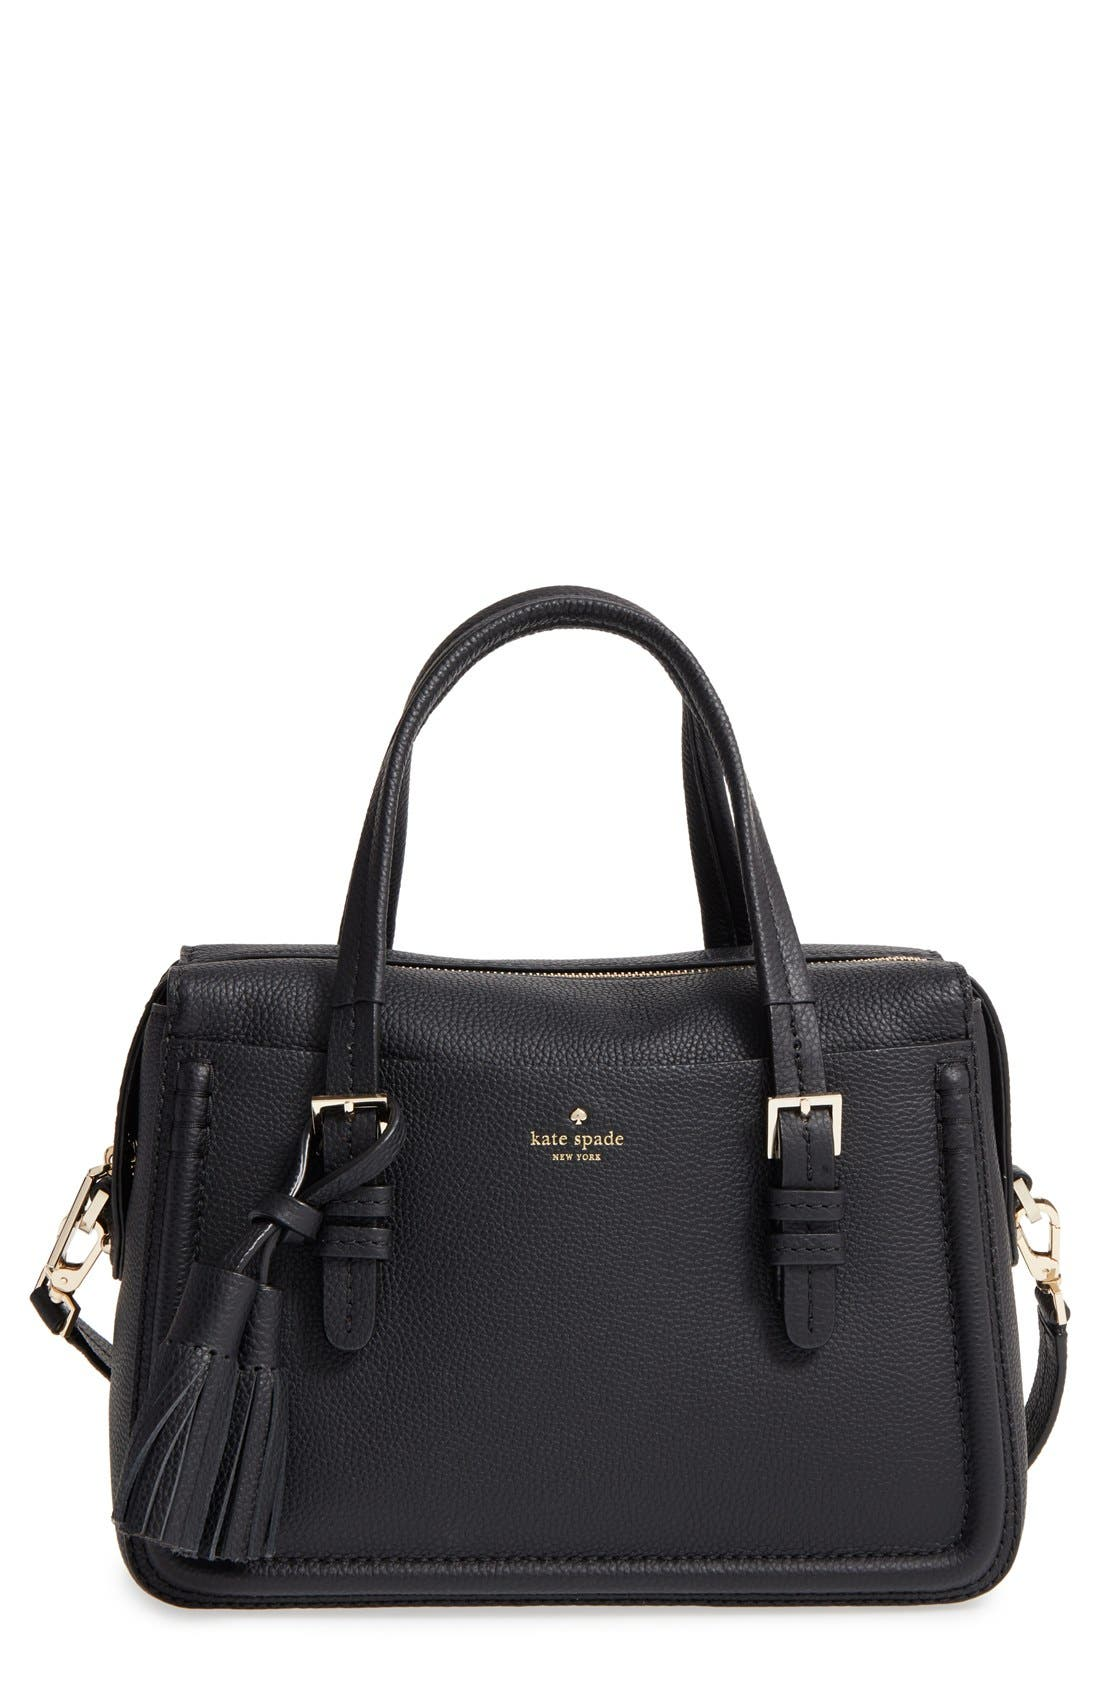 Alternate Image 1 Selected - kate spade new york orchard street - elowen leather satchel